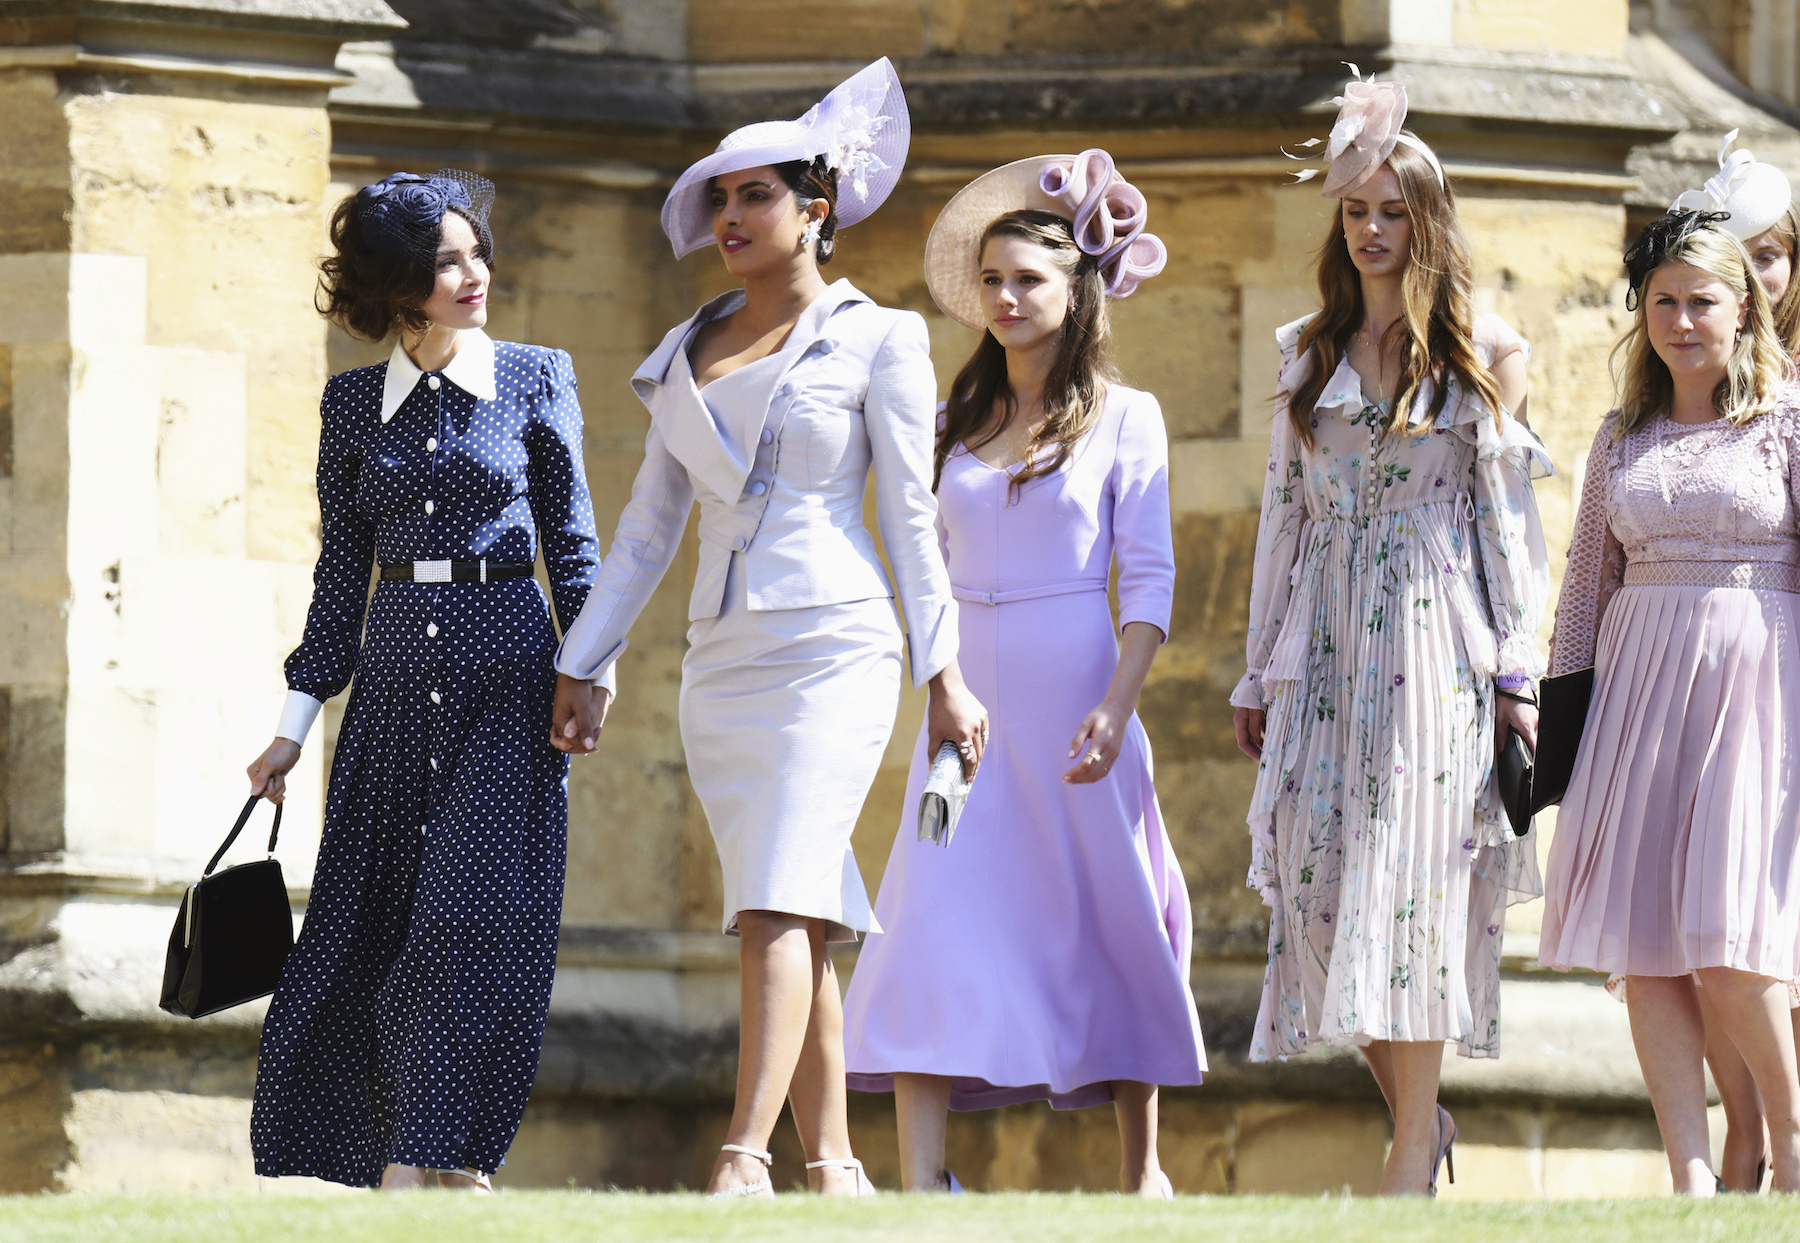 <div class='meta'><div class='origin-logo' data-origin='AP'></div><span class='caption-text' data-credit='Chris Jackson/Getty Images'>Abigail Spencer and Priyanka Chopra arrive at the wedding of Prince Harry to Ms Meghan Markle.</span></div>